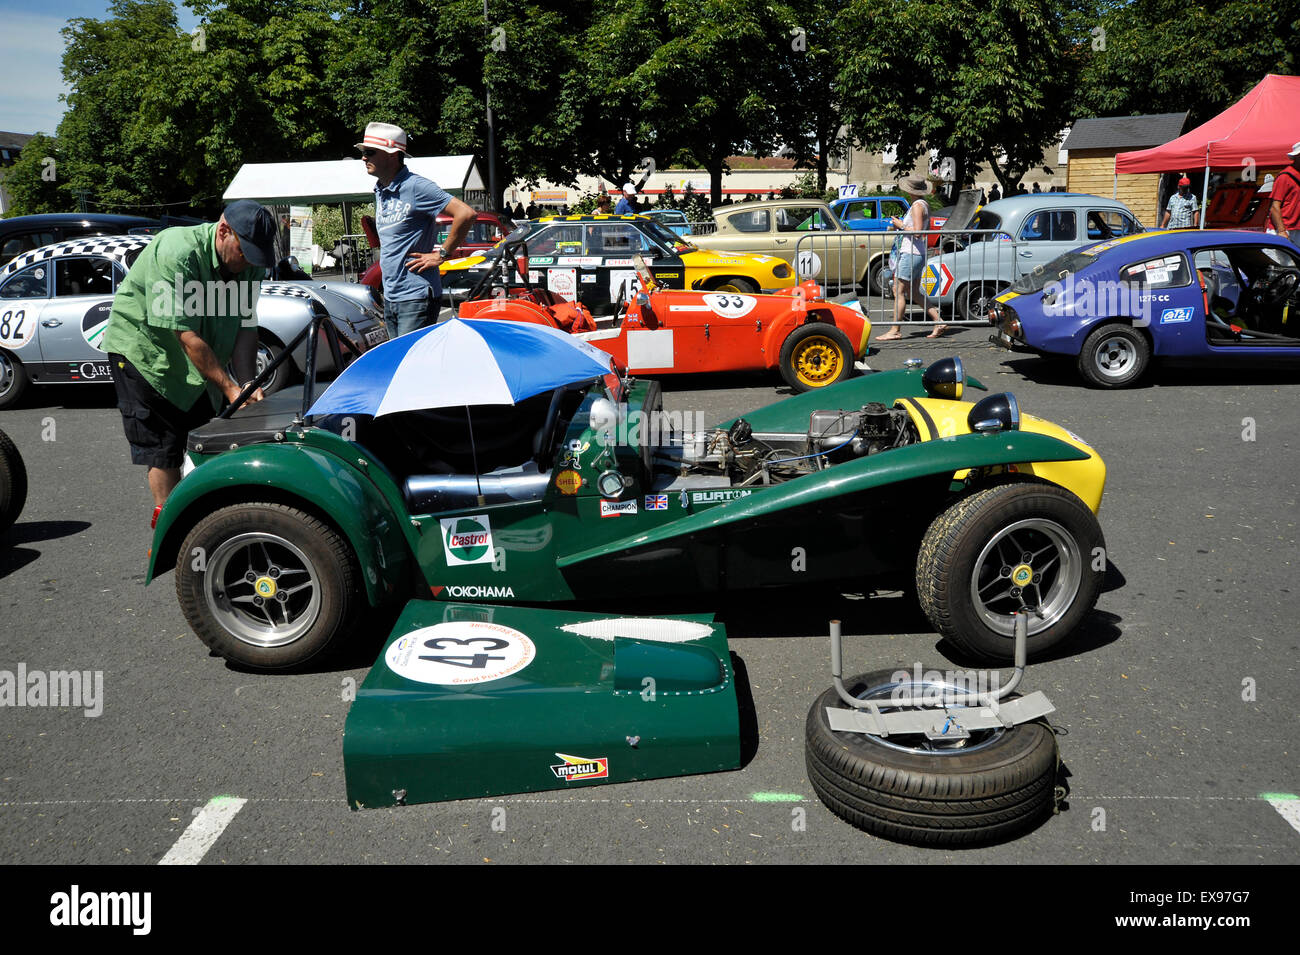 lotus caterham in the pits at the bressuire historic grand prix stock photo royalty free image. Black Bedroom Furniture Sets. Home Design Ideas